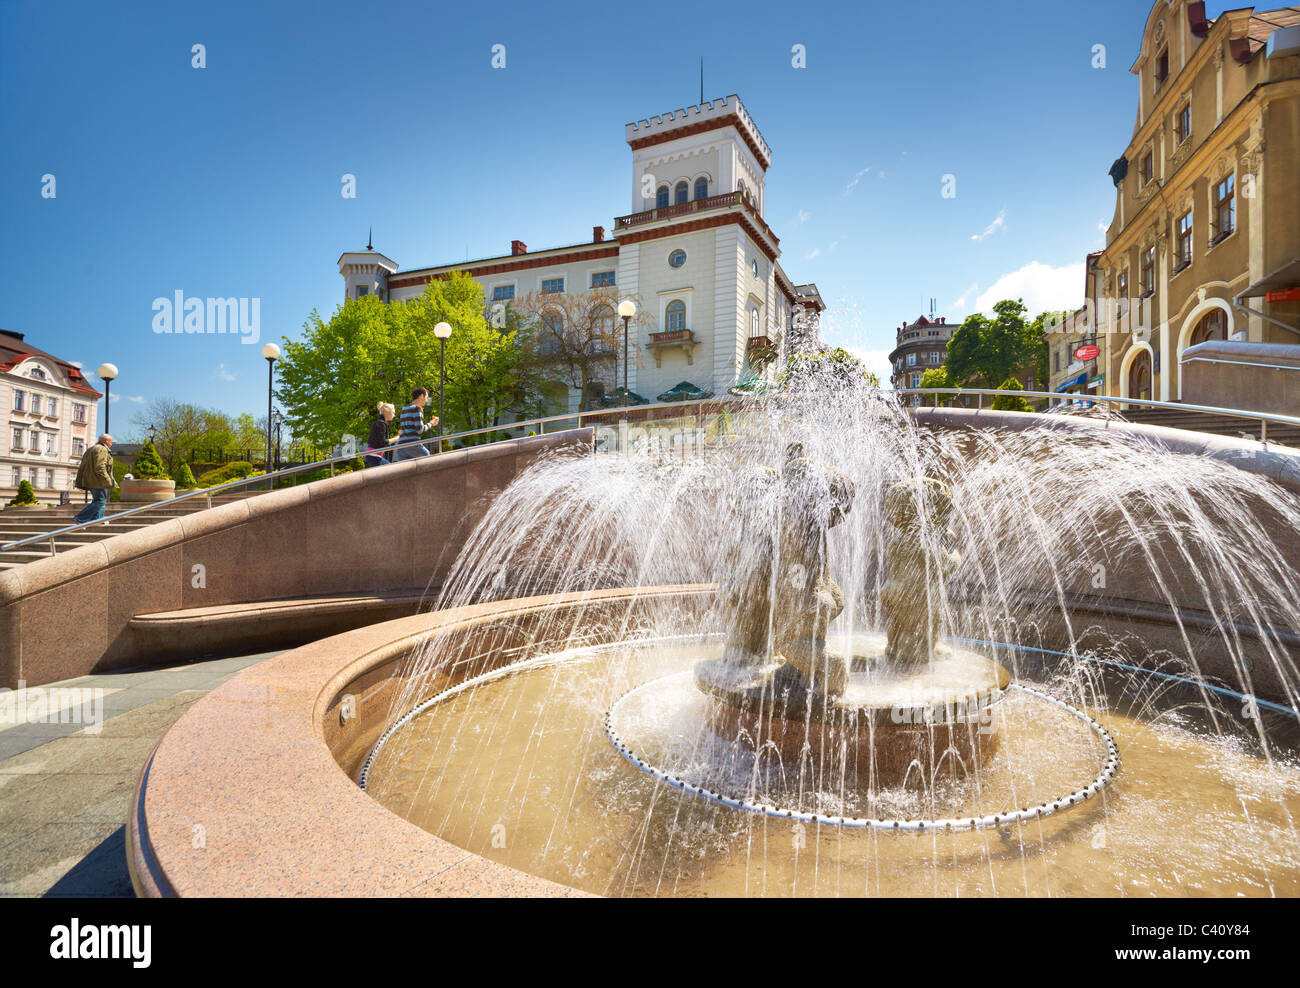 Bielsko-Biala, fountain at the Old Town Square, Poland - Stock Image